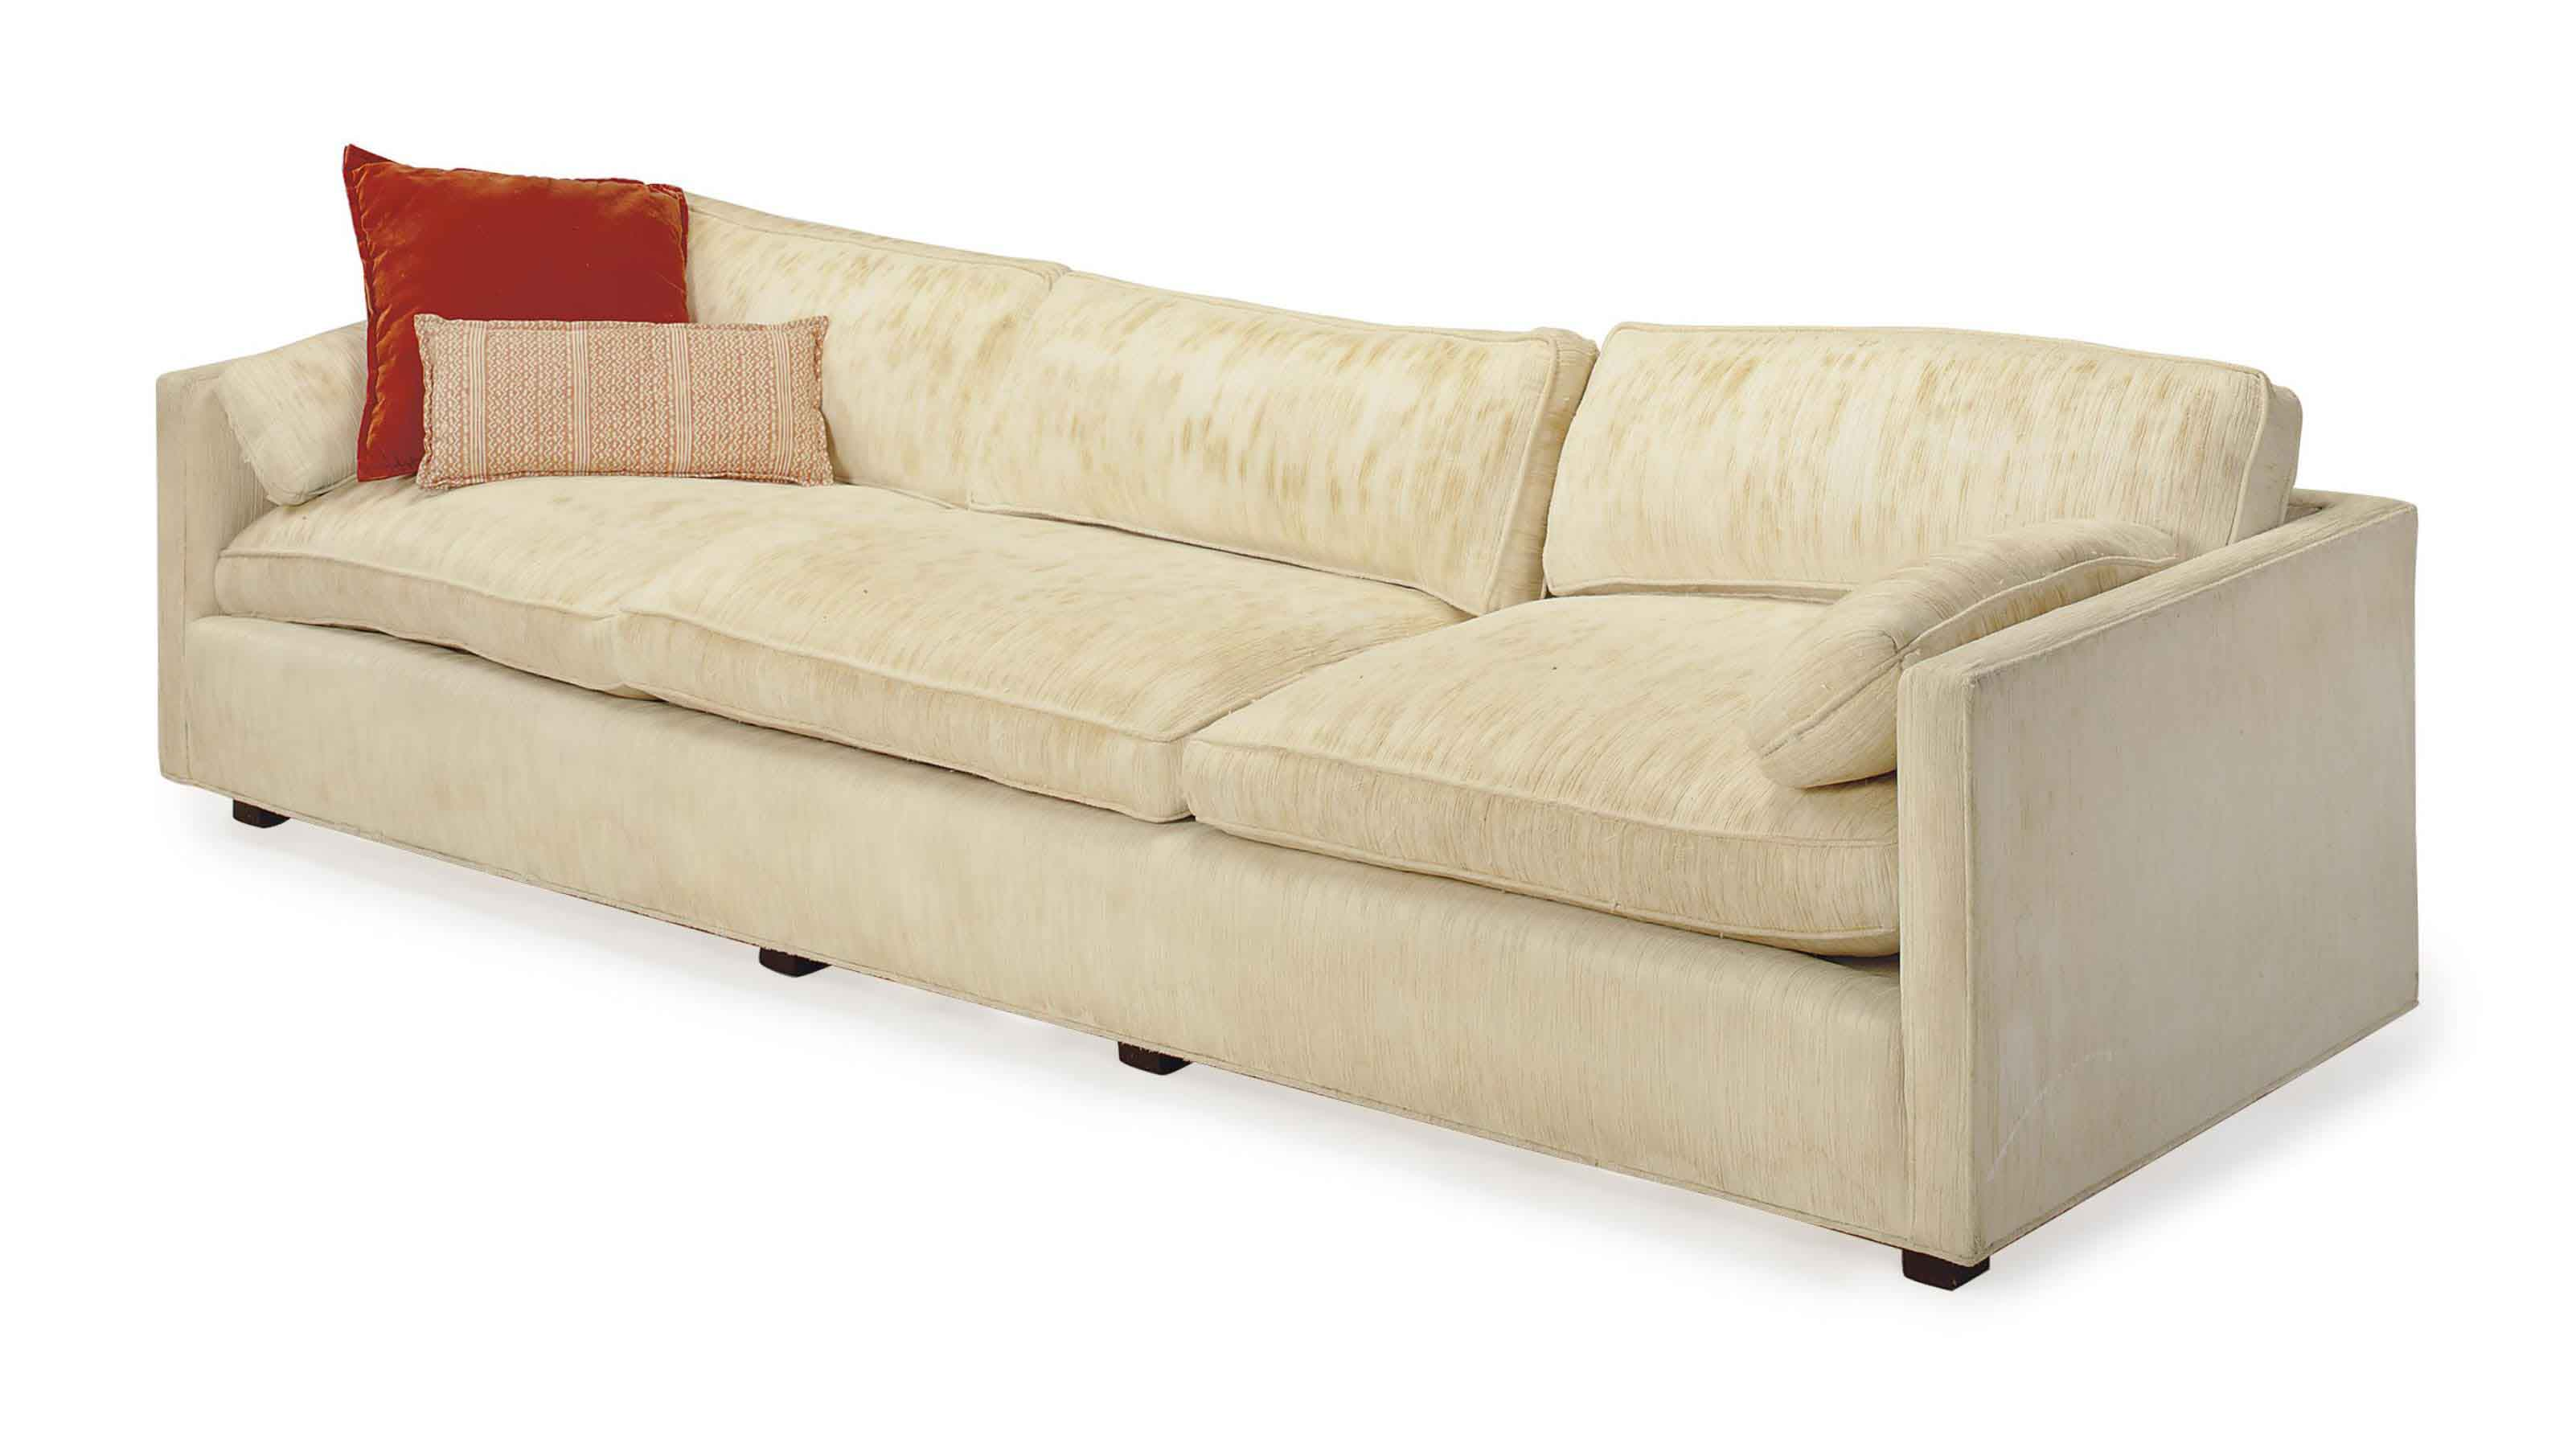 A CREAM TEXTURED COTTON AND VELOUR UPHOLSTERED SOFA,